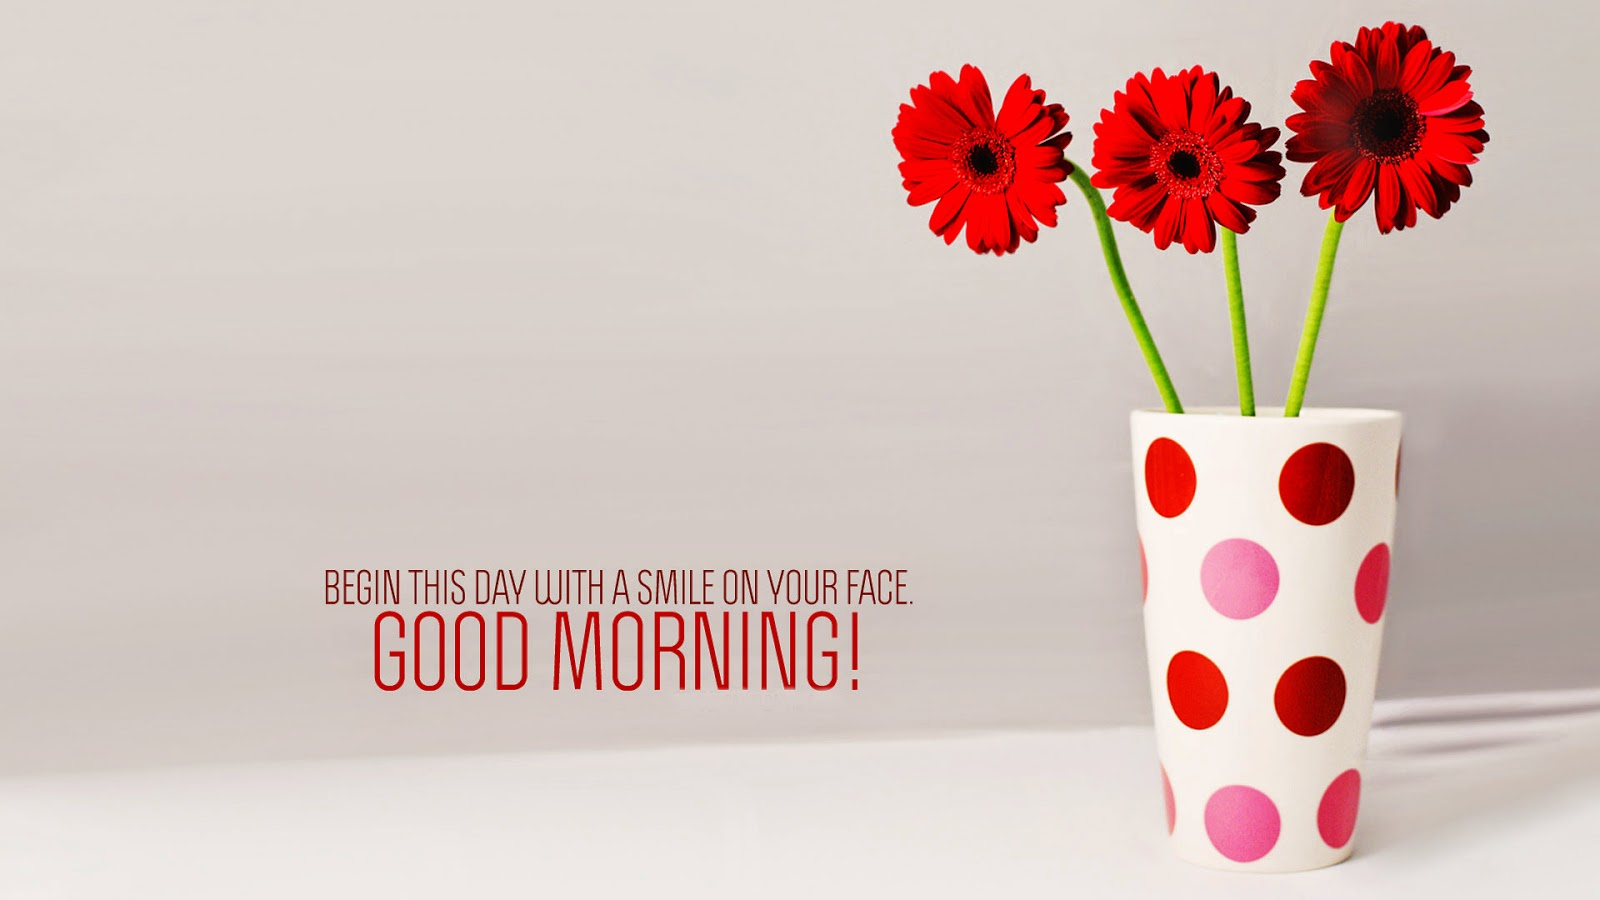 Beautiful good morning images free download azquotes good morning images and full hd wallpaper free shares izmirmasajfo